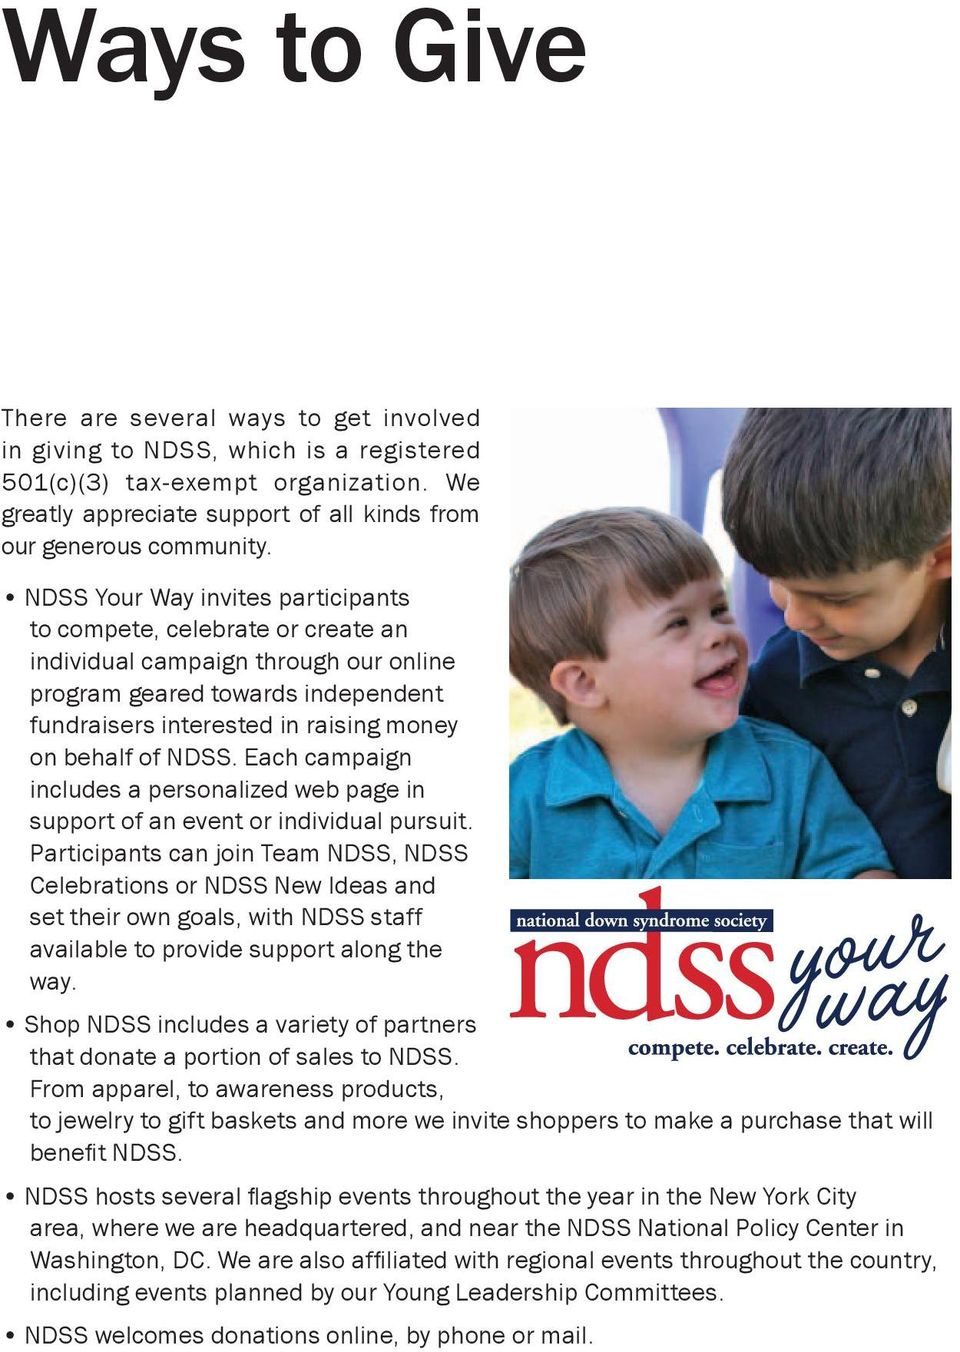 NDSS. Each campaign includes a personalized web page in support of an event or individual pursuit.